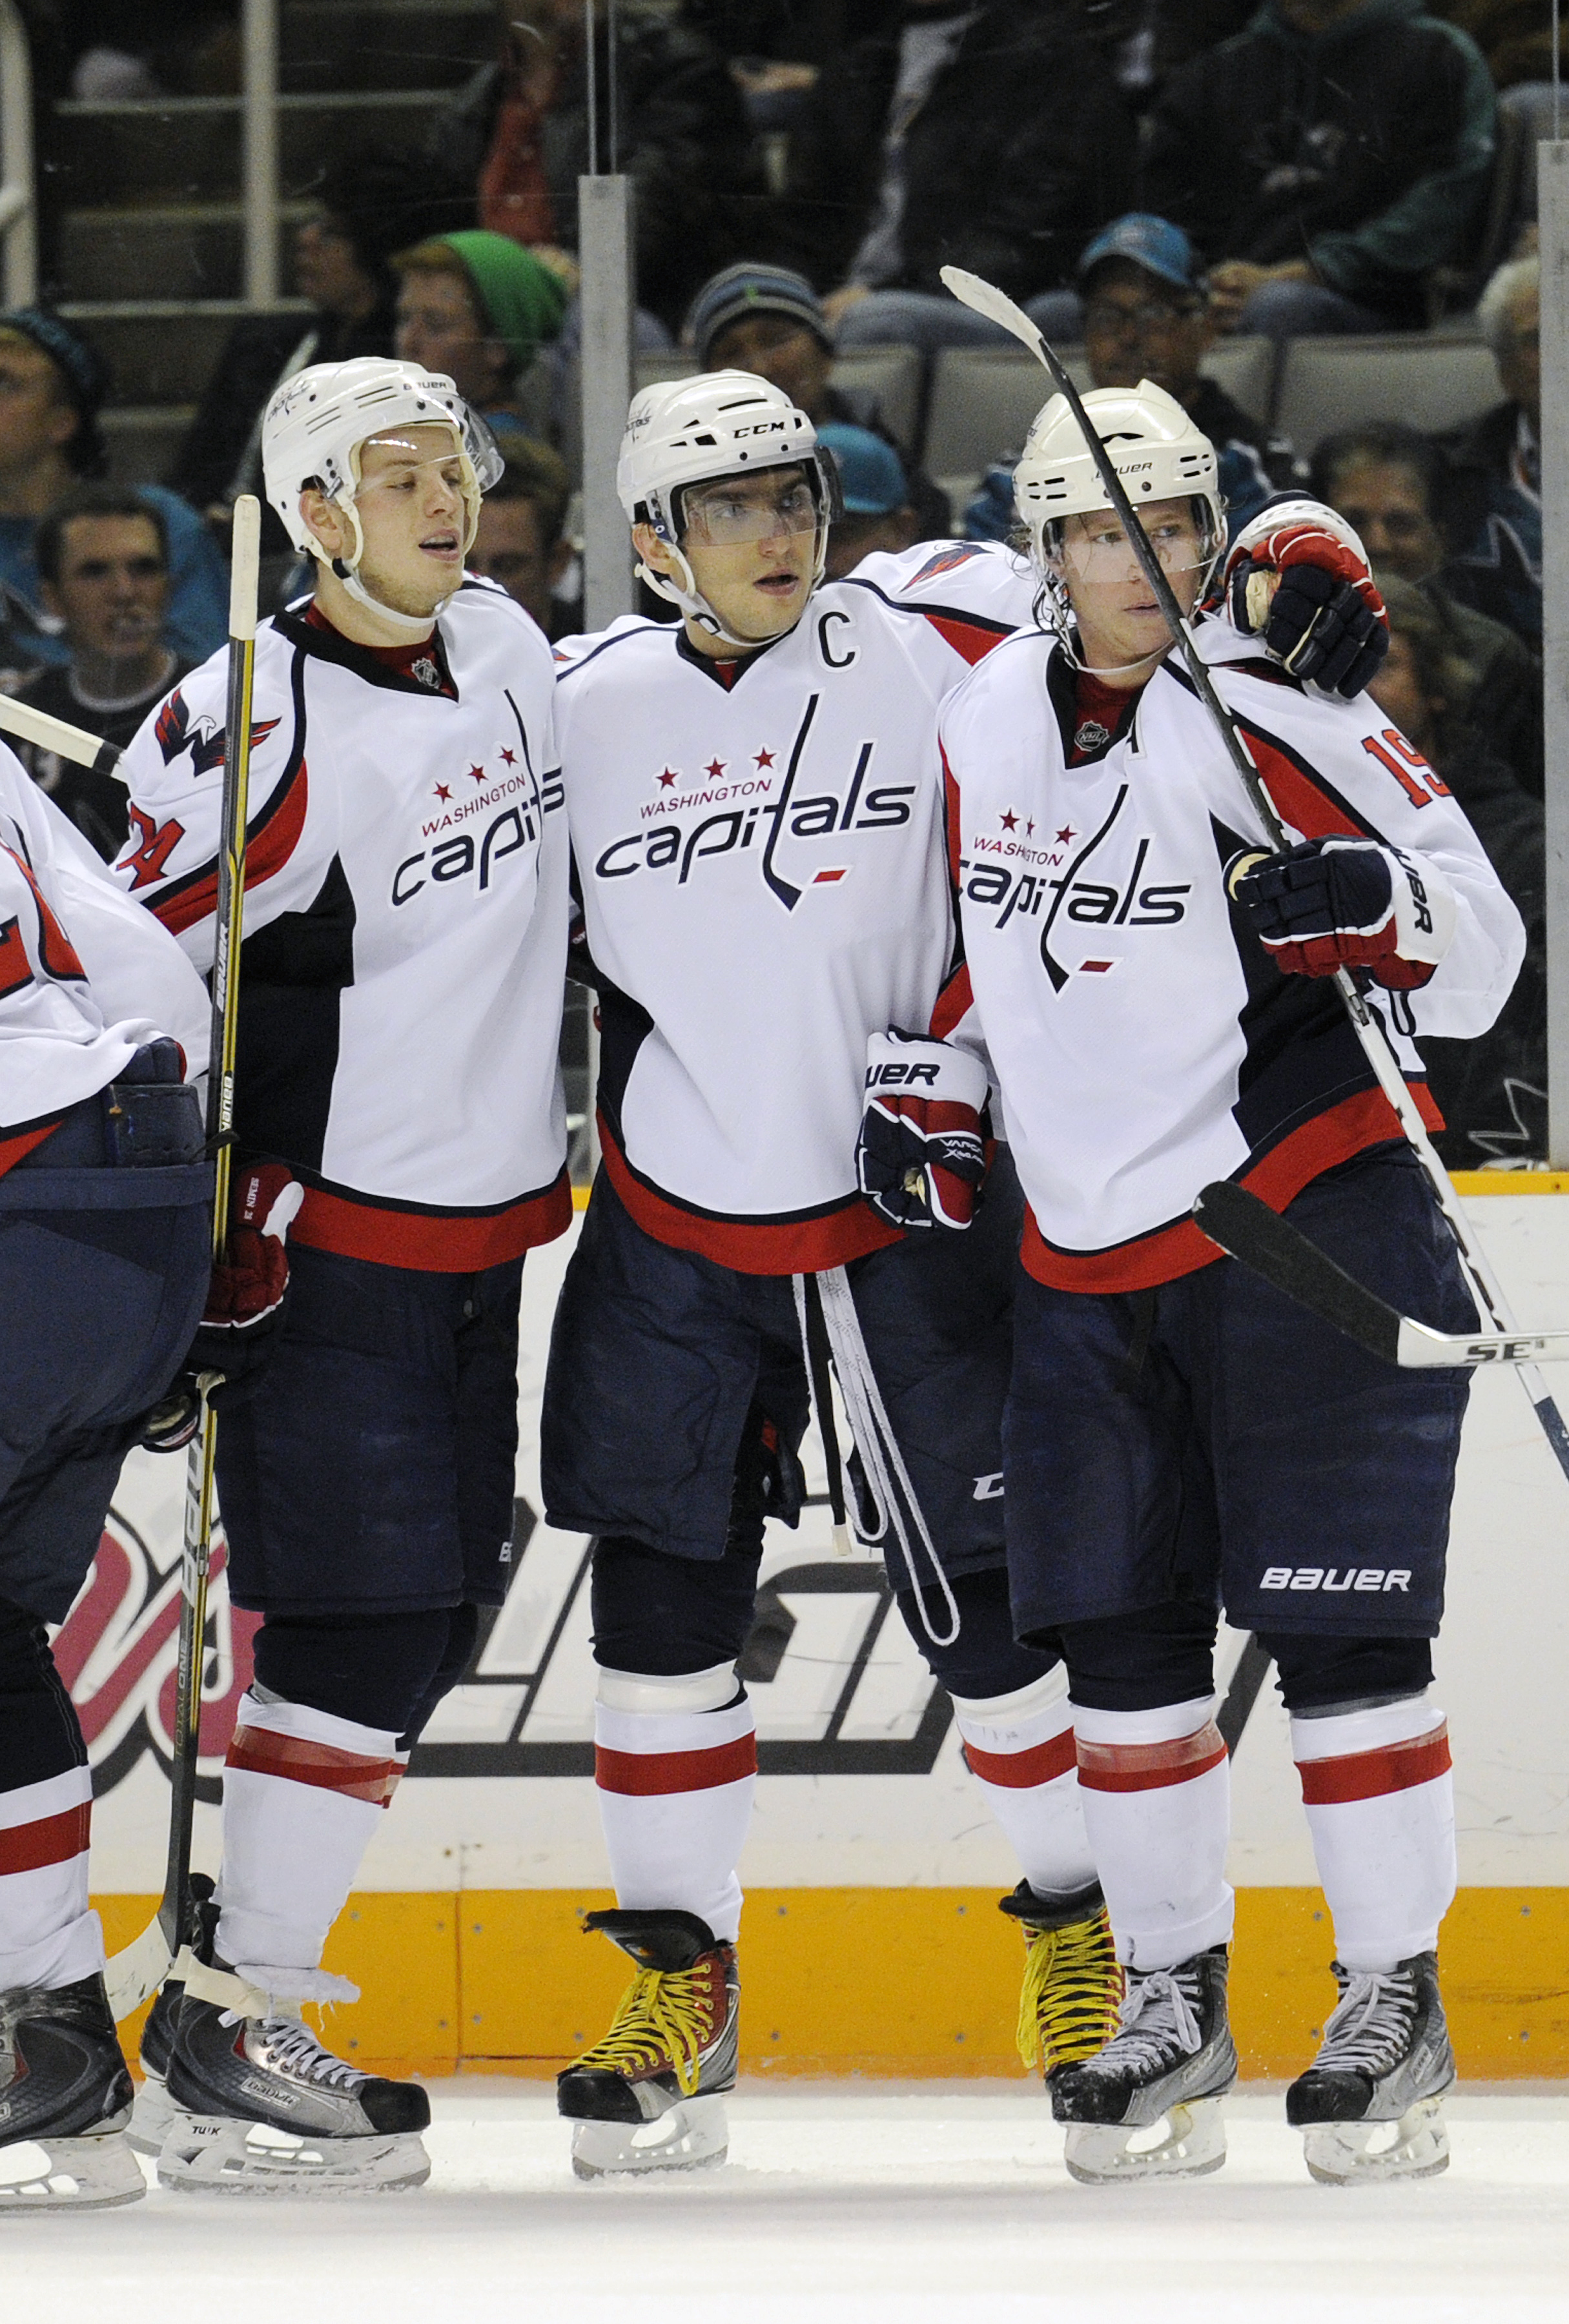 SAN JOSE, CA - FEBRUARY 17: Nicklas Backstrom #19 of the Washington Capitals celebrates with teammates John Carlson #74 and Alex Ovechkin #8 after scoring a goal against the San Jose Sharks in the third period during an NHL hockey game at the HP Pavilion